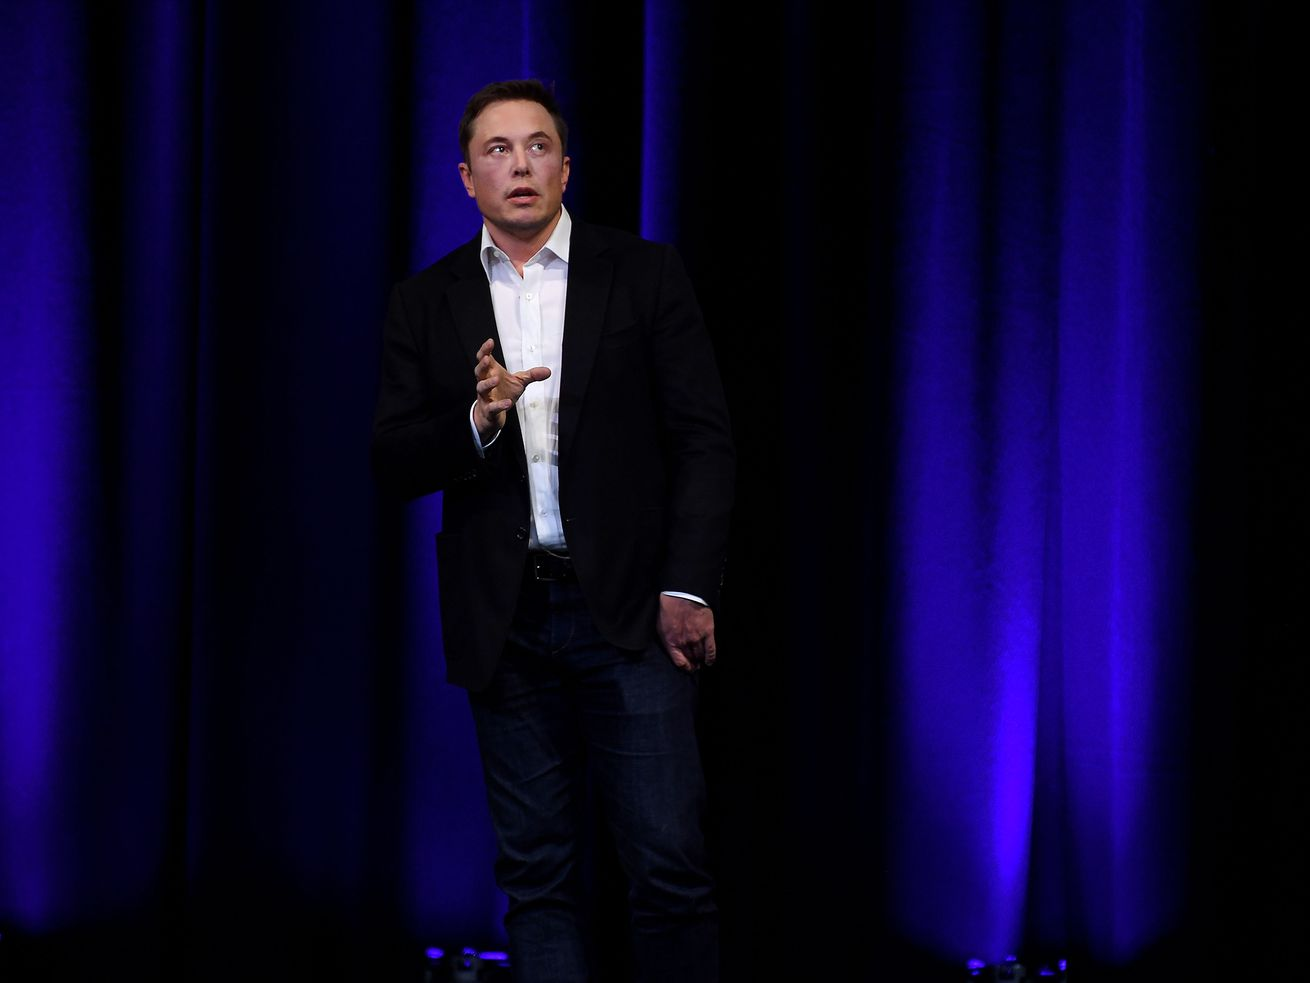 Elon Musk still hasn't decided what to do with board member Steve Jurvetson after allegations of misconduct